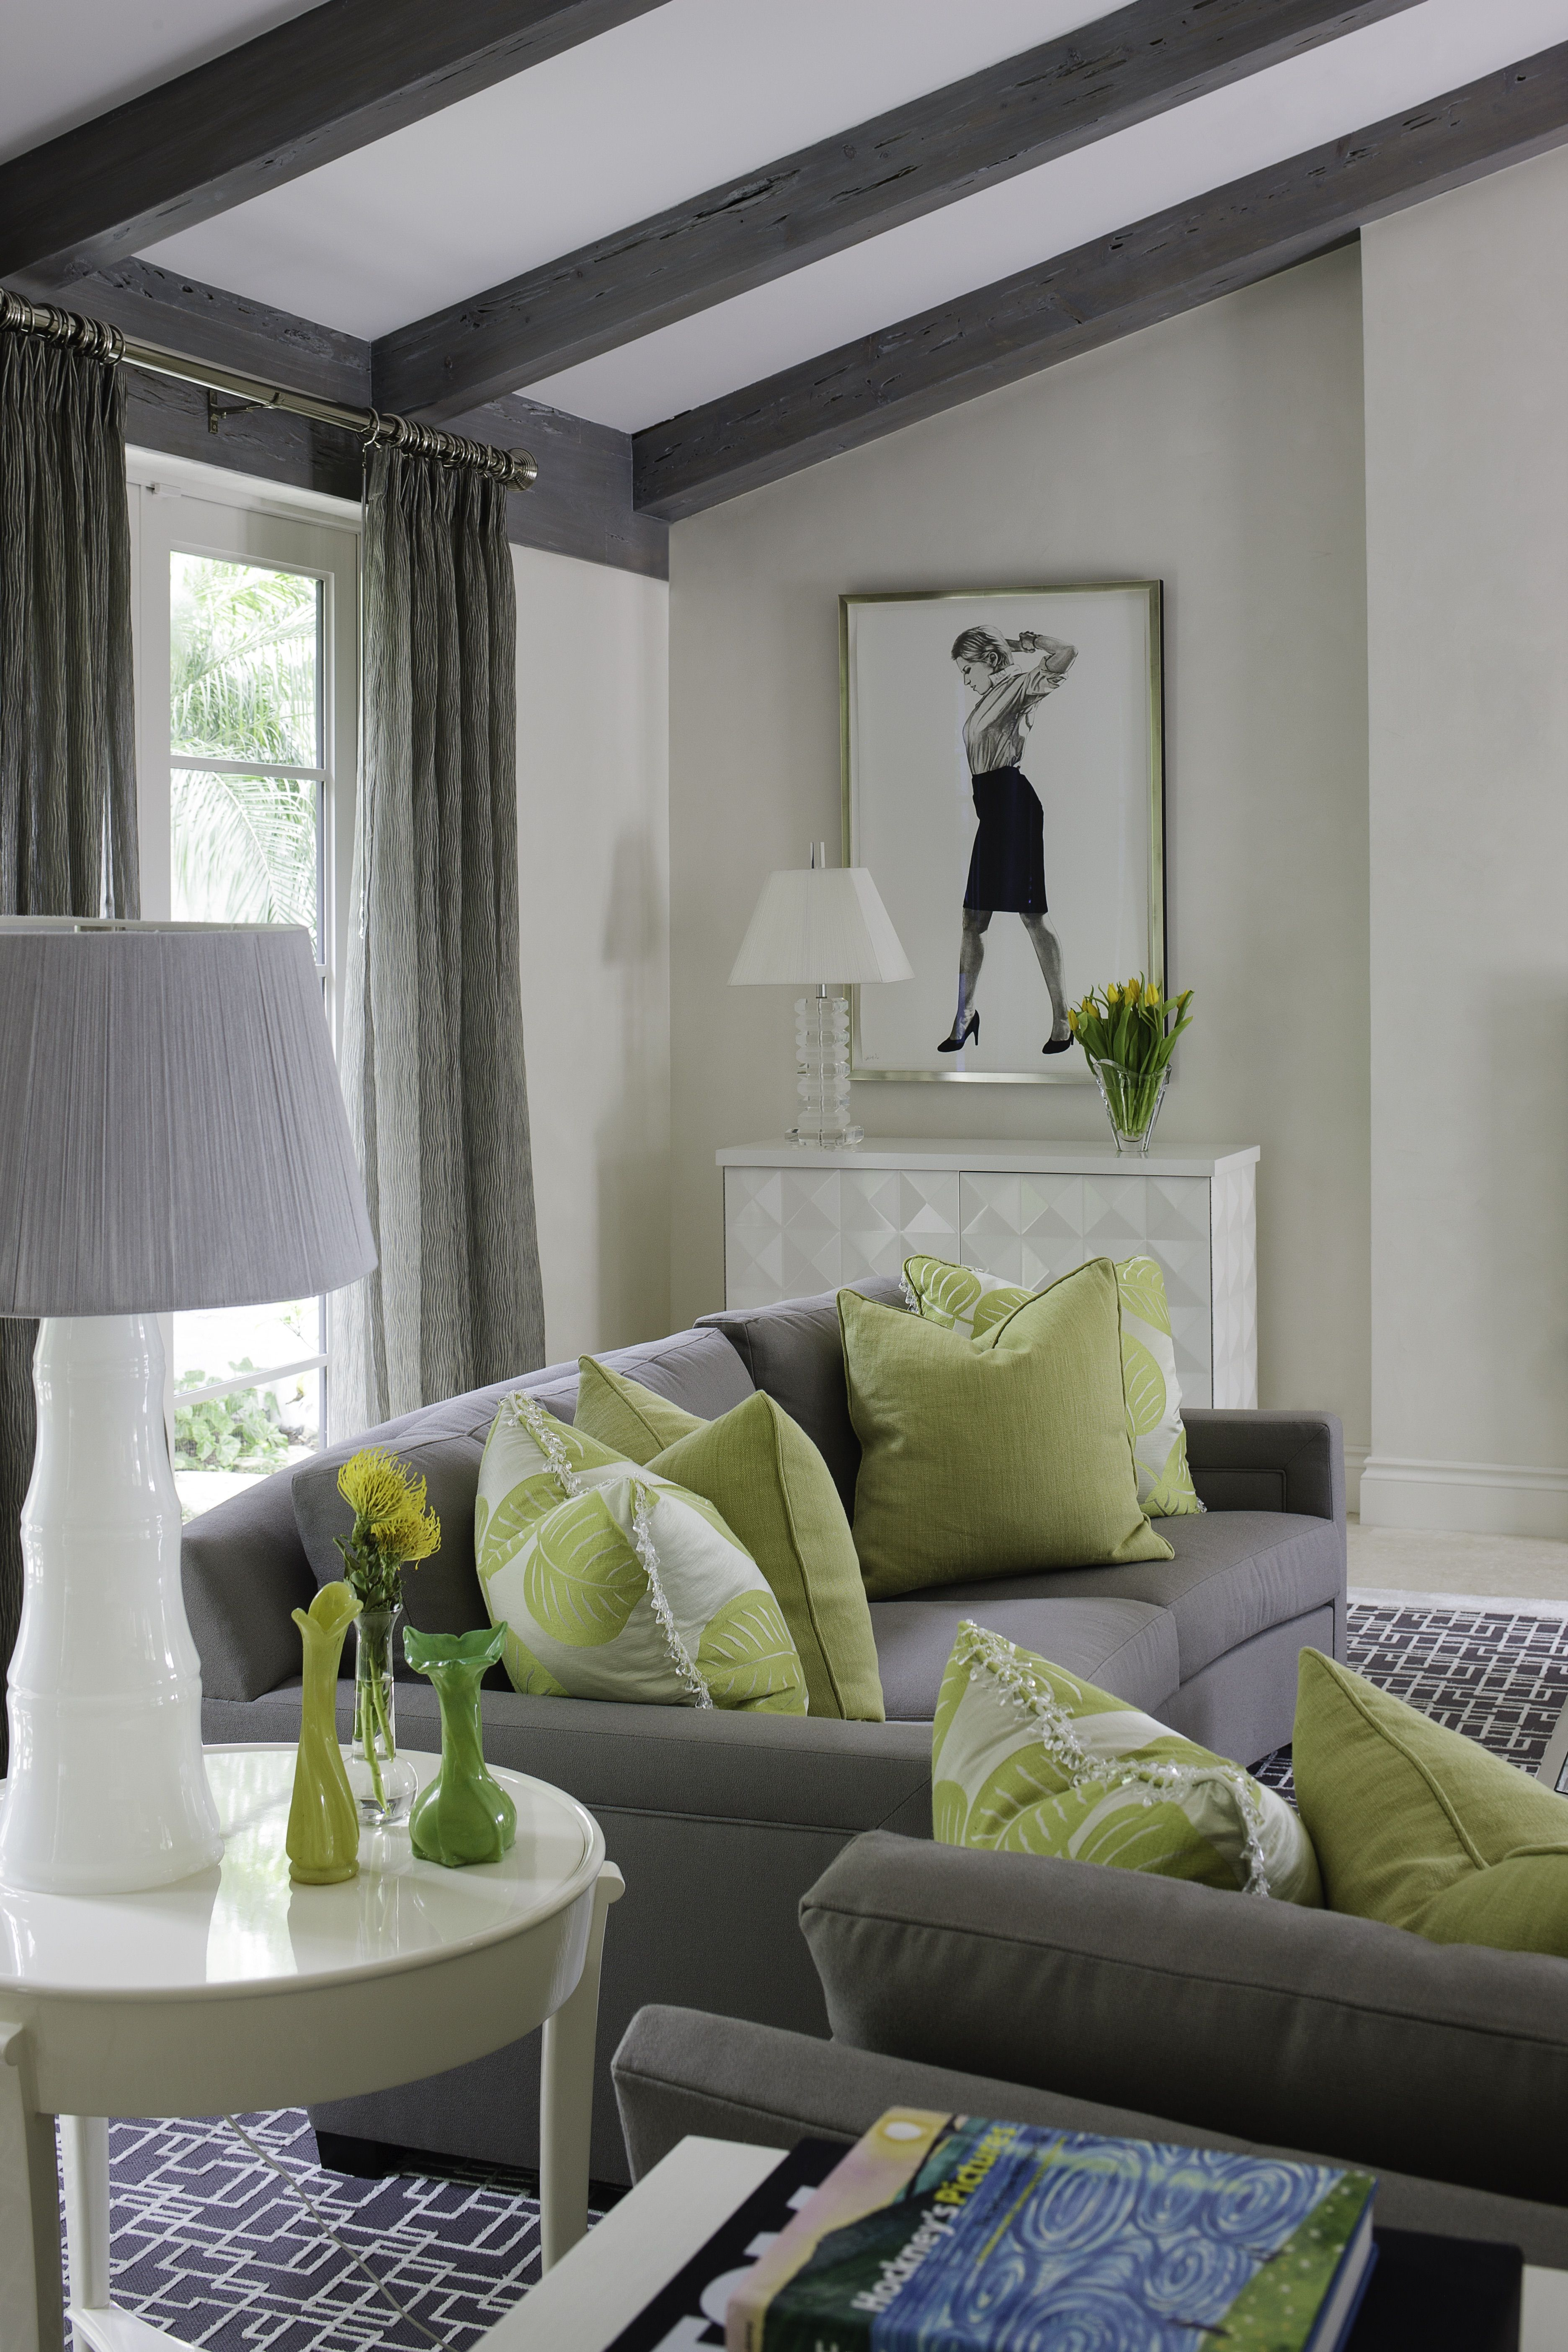 Sitting Area Lime Green Accent Pillows Interiordesign Transitional Decor Green Living Room Decor Grey And Red Living Room Living Room Green